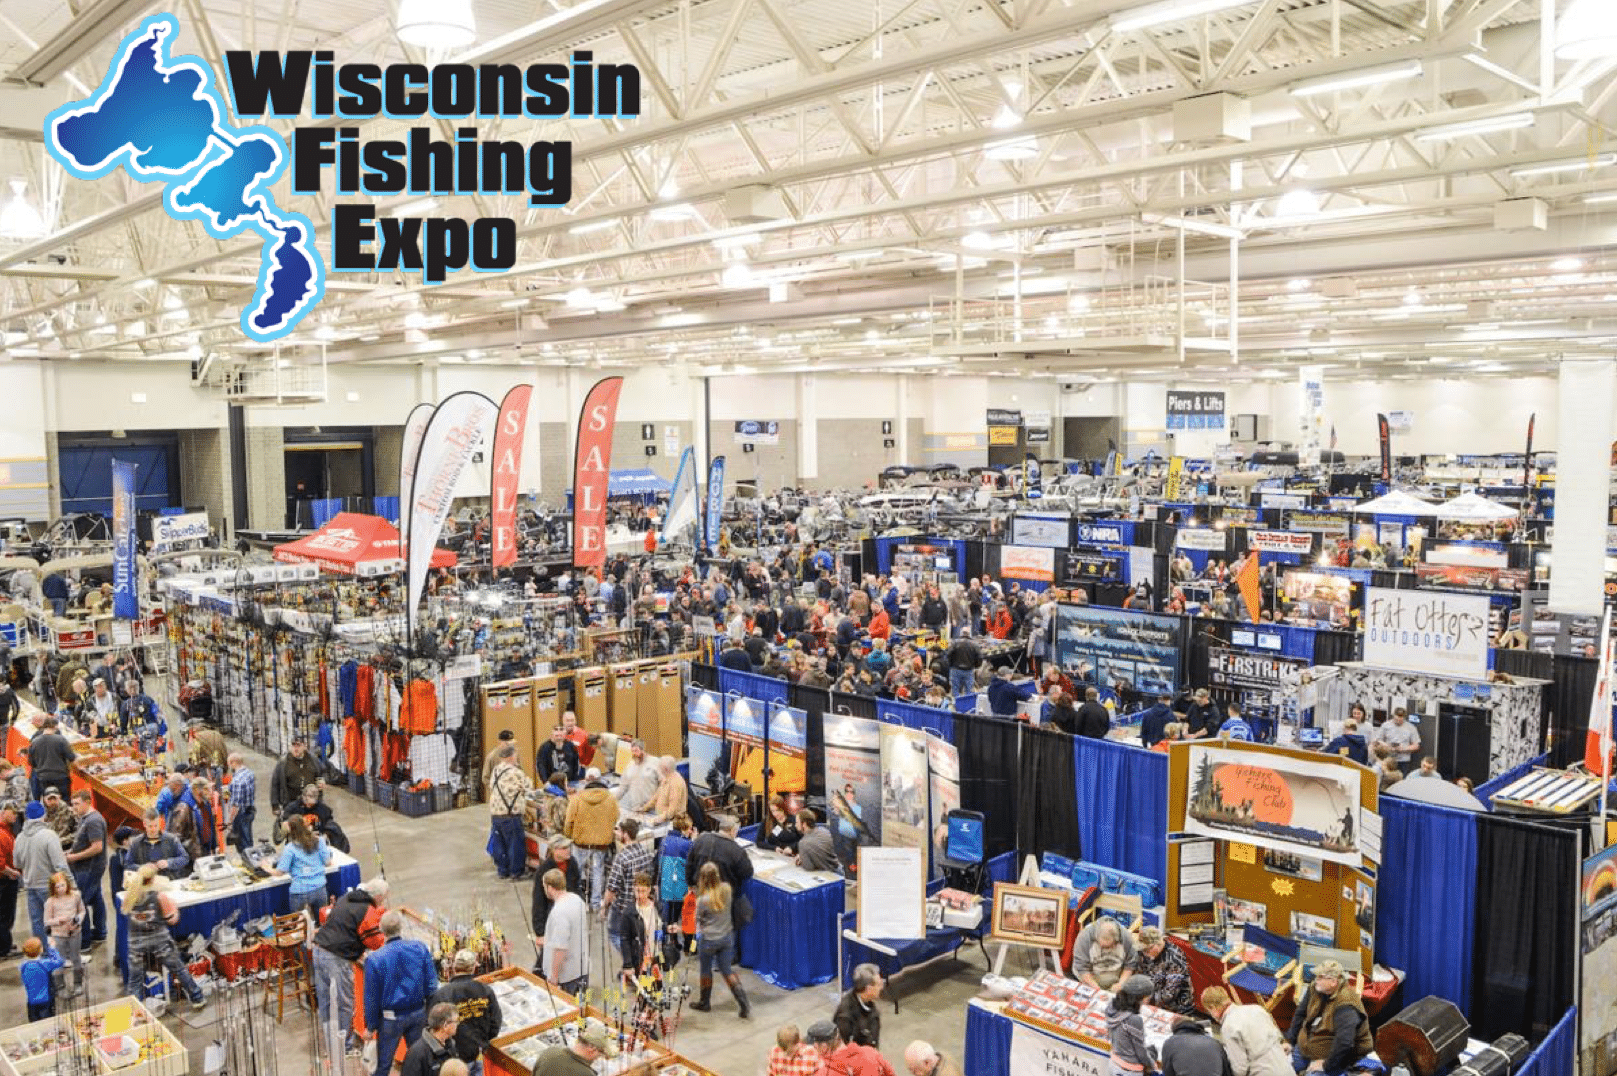 2019 Wisconsin Fishing Expo: February 22-24 - MidWest Outdoors